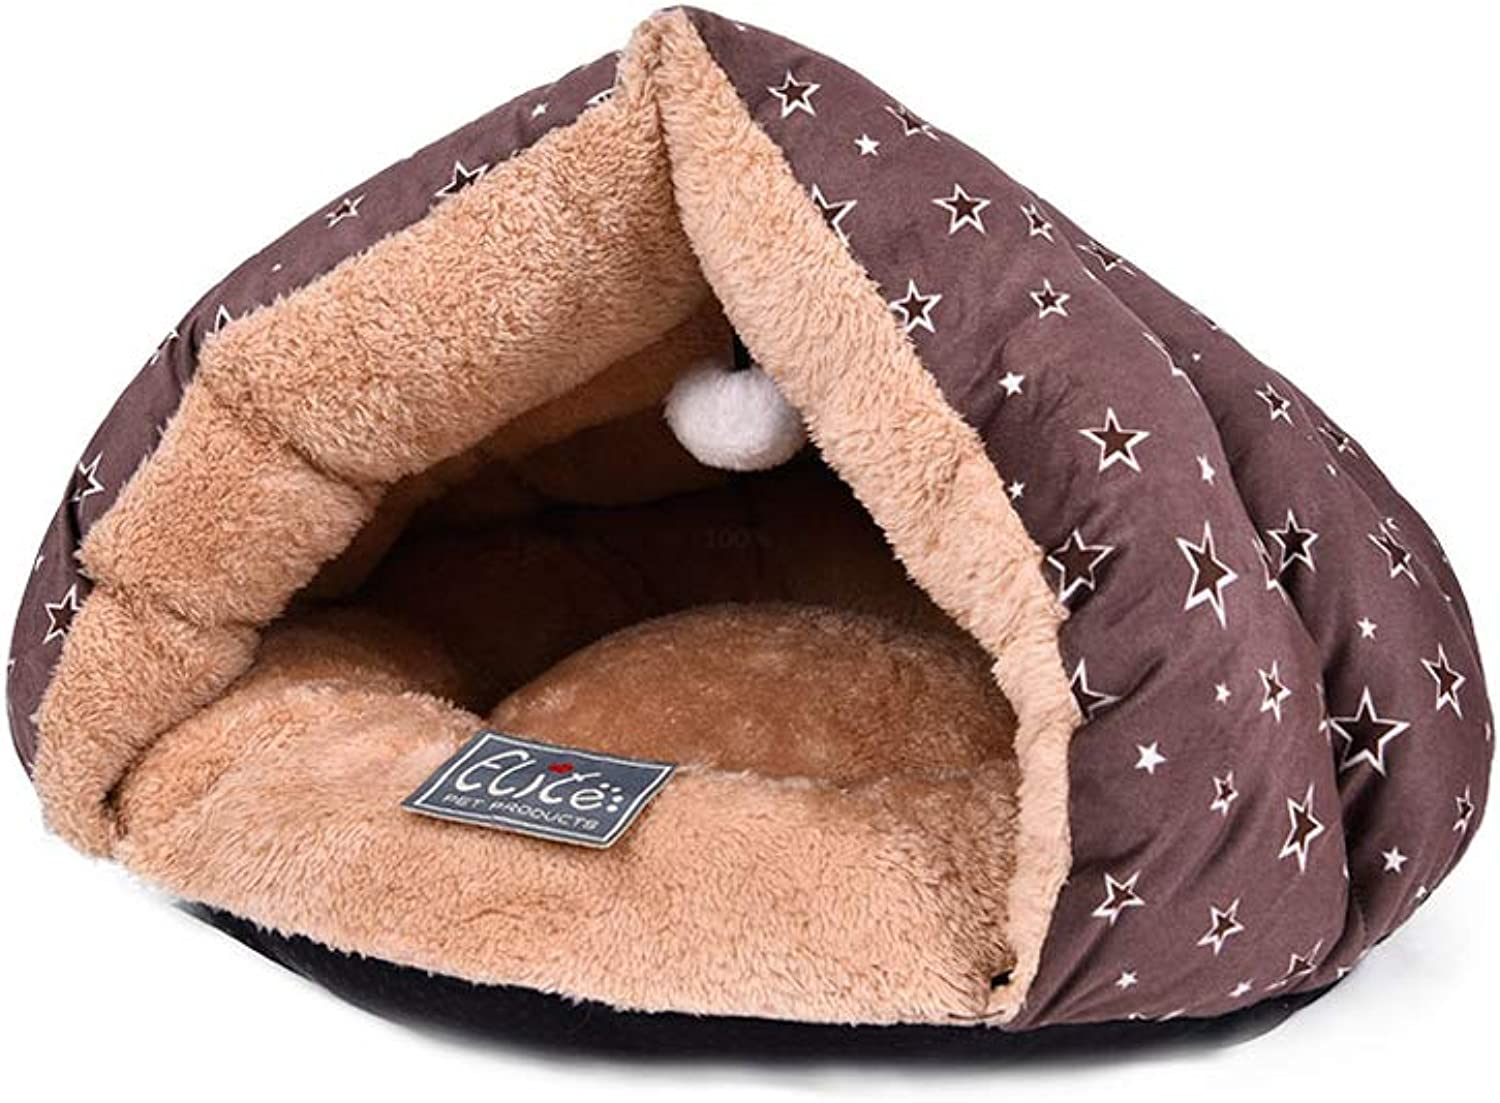 Cat Bed, Closed Small Cat Dog Pet Bed Four Seasons Universal Cat Sleeping Bag Pet Nest, MultiSize (color   Brown, Size   S)